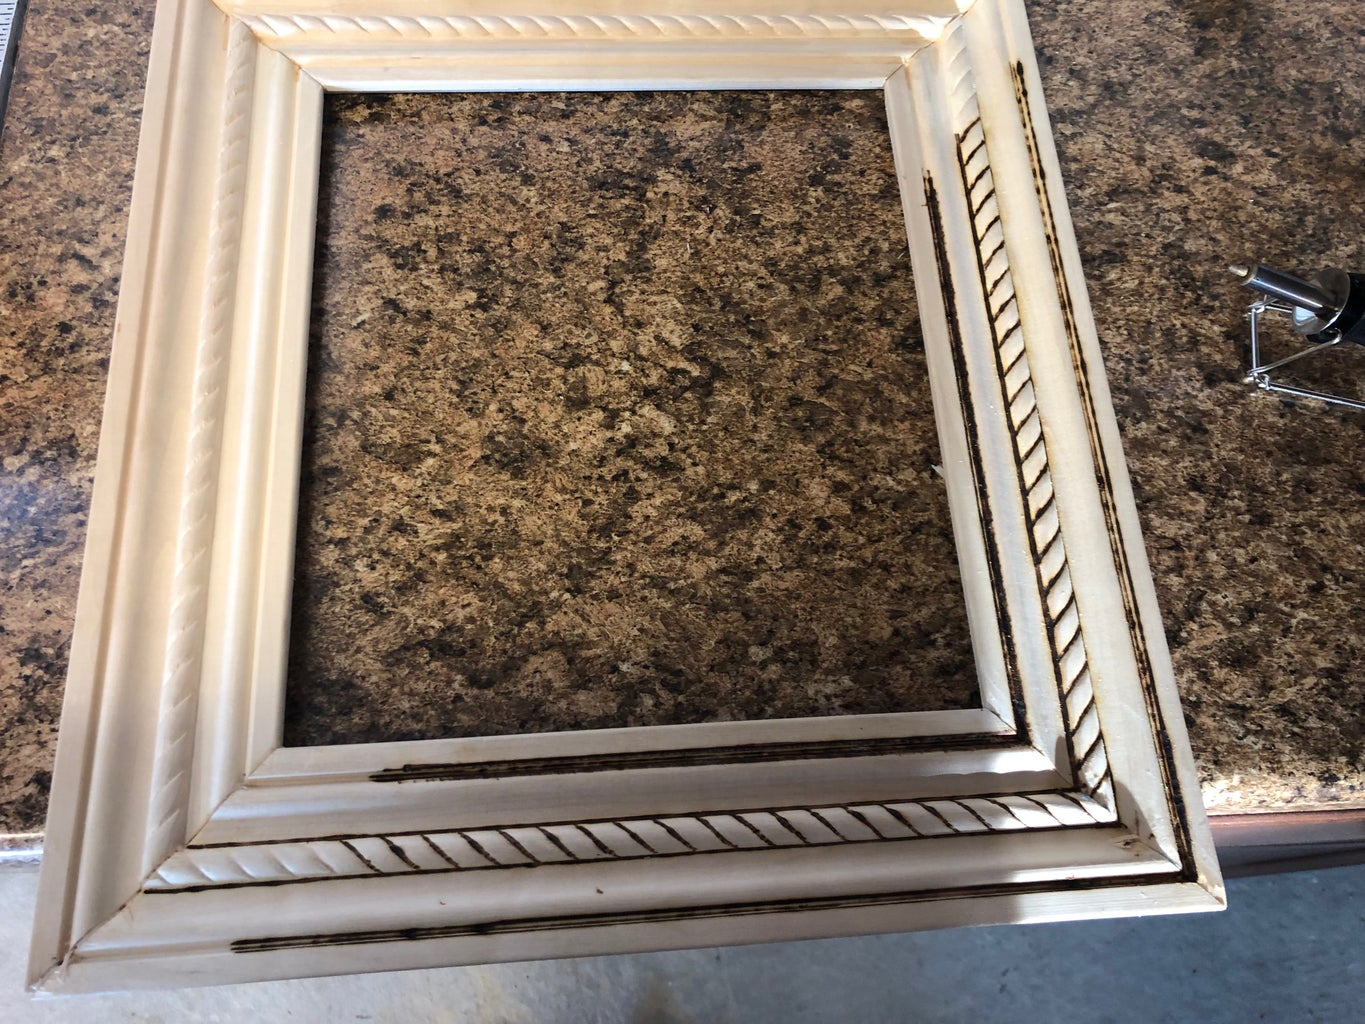 Wood Burning the Picture Frame